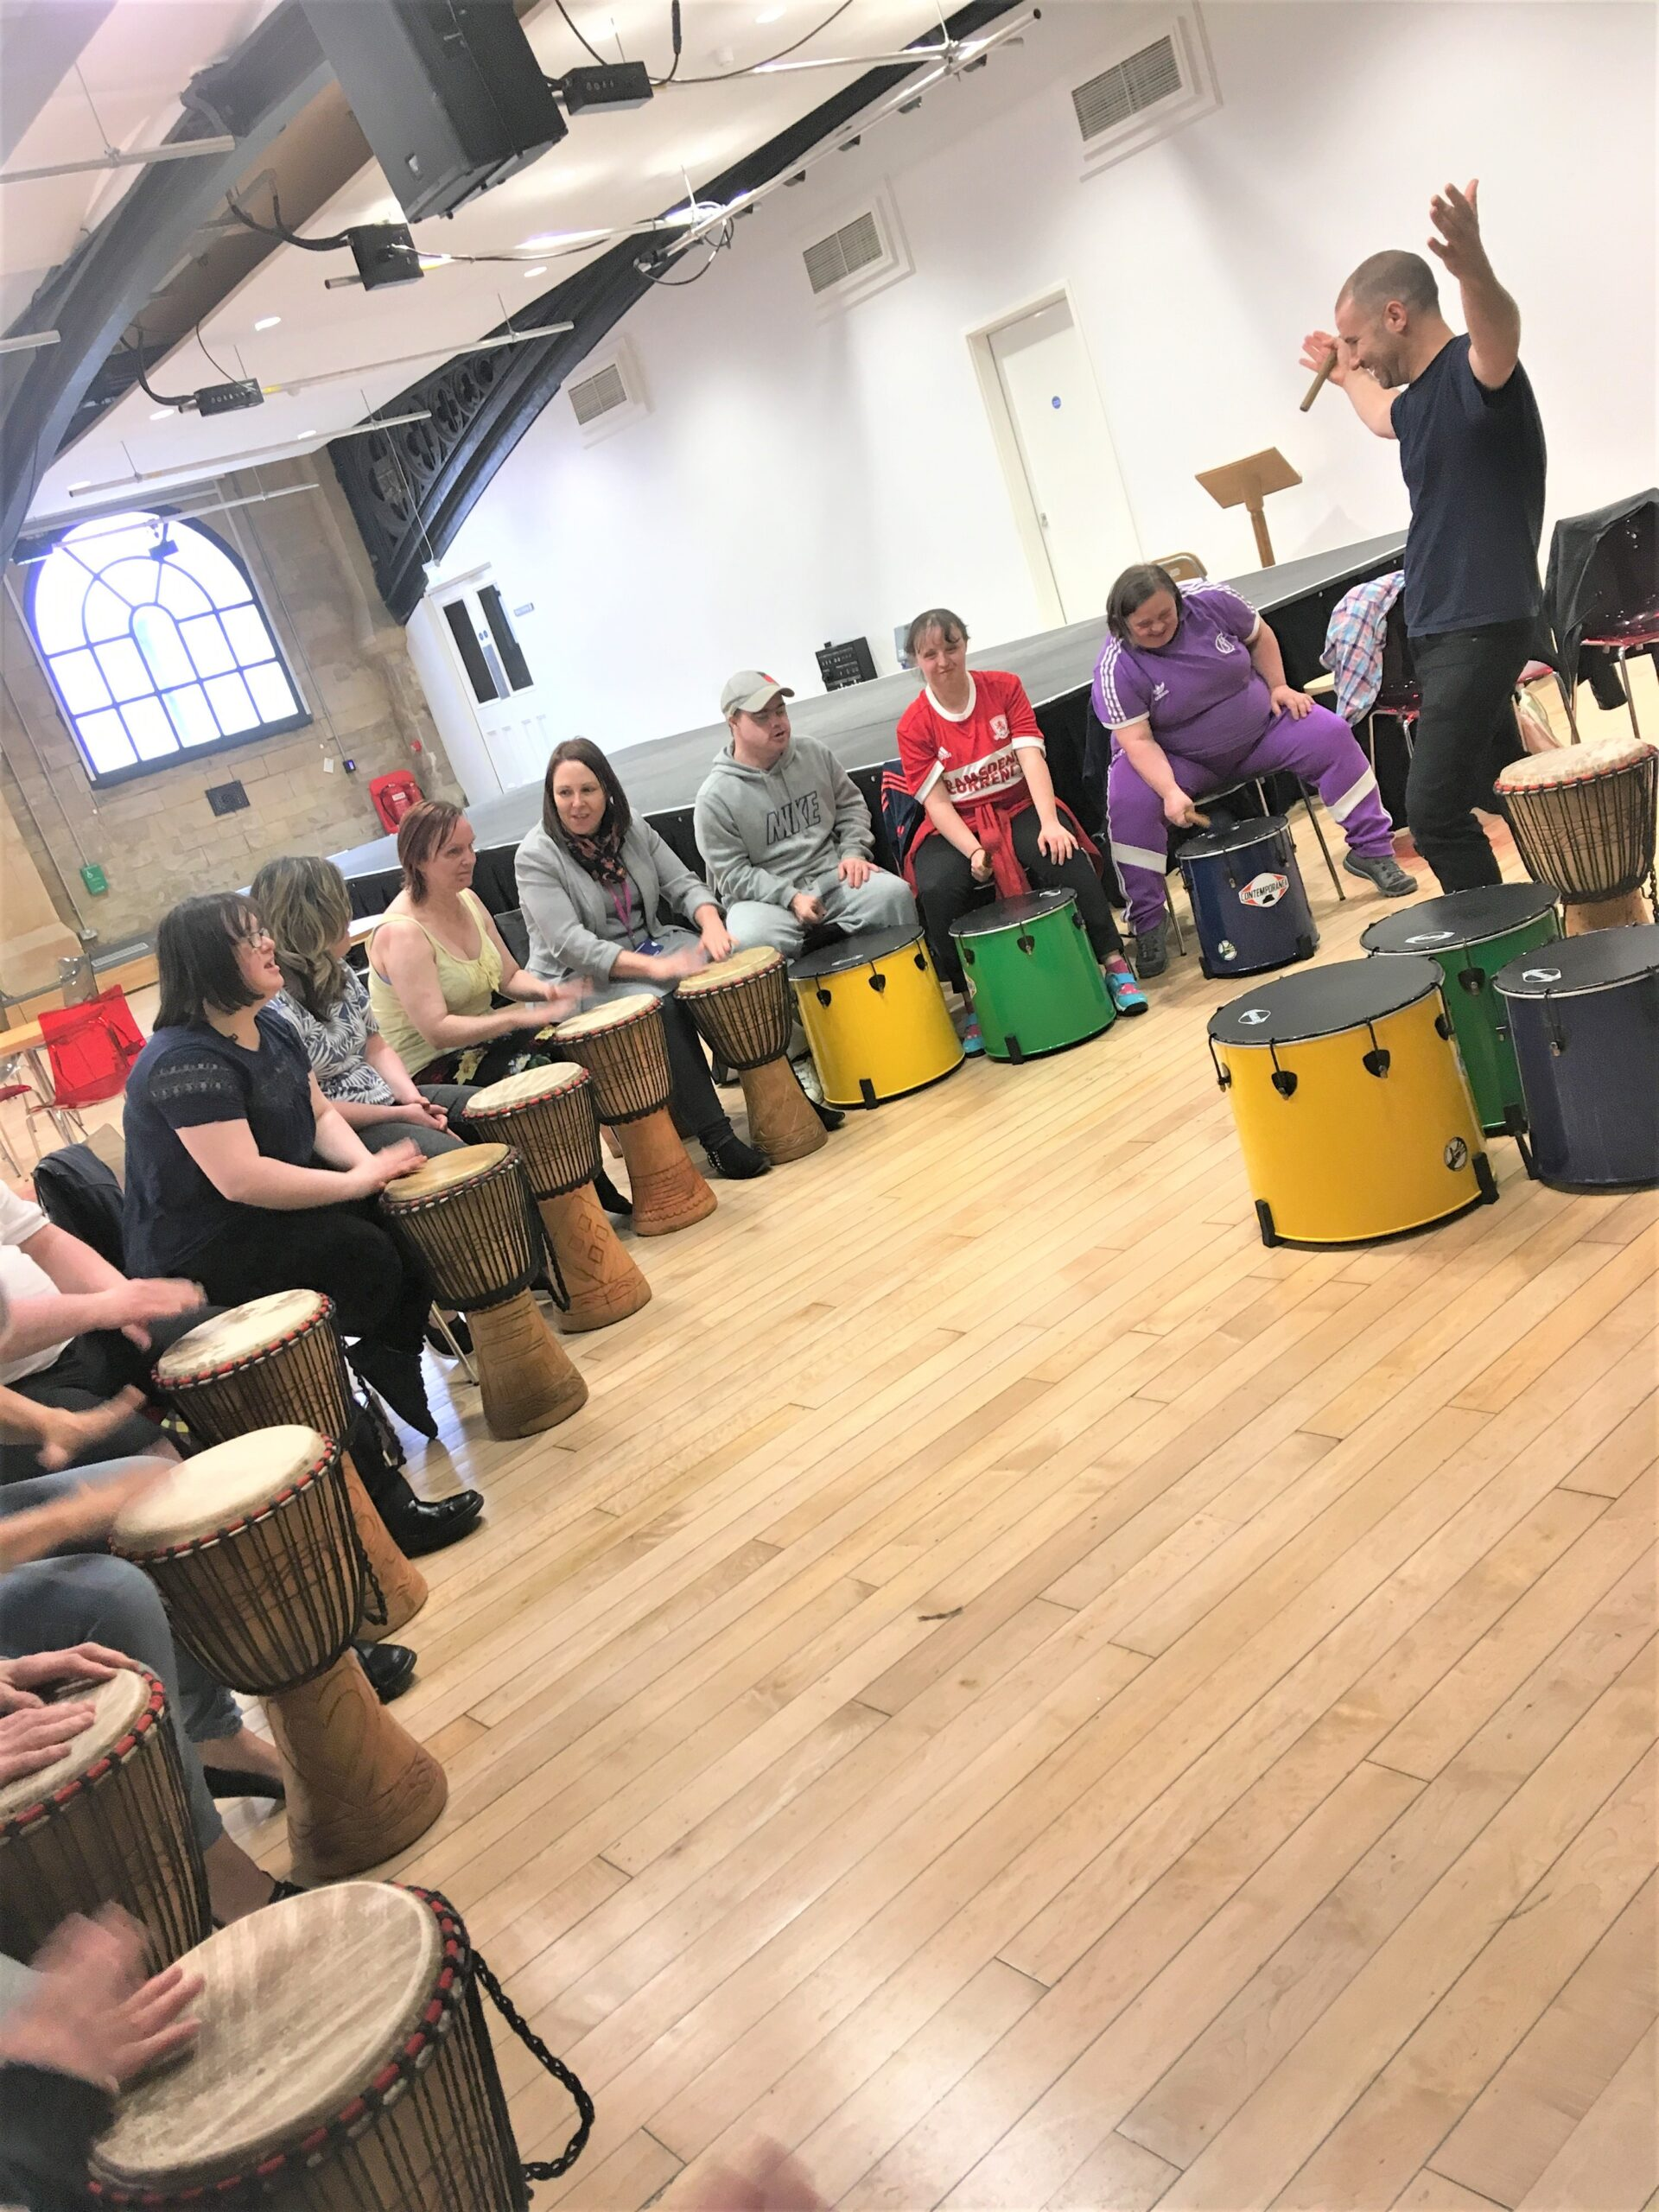 A music leader teaches a group of participants in a drumming workshop